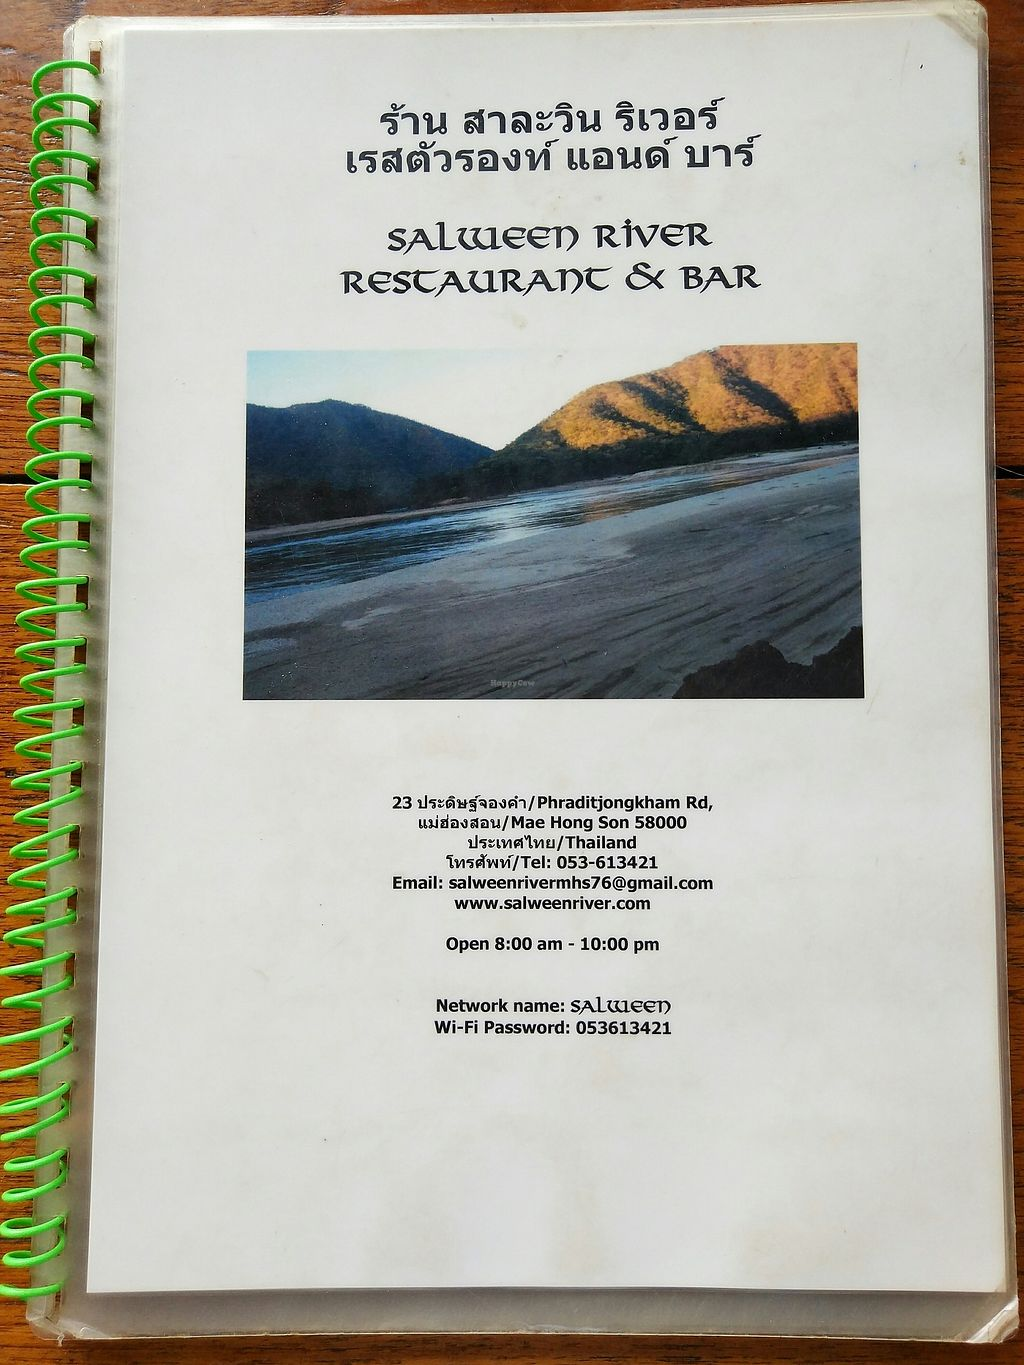 """Photo of Salween River Restaurant  by <a href=""""/members/profile/eric"""">eric</a> <br/>Menu cover <br/> July 11, 2017  - <a href='/contact/abuse/image/95736/278949'>Report</a>"""